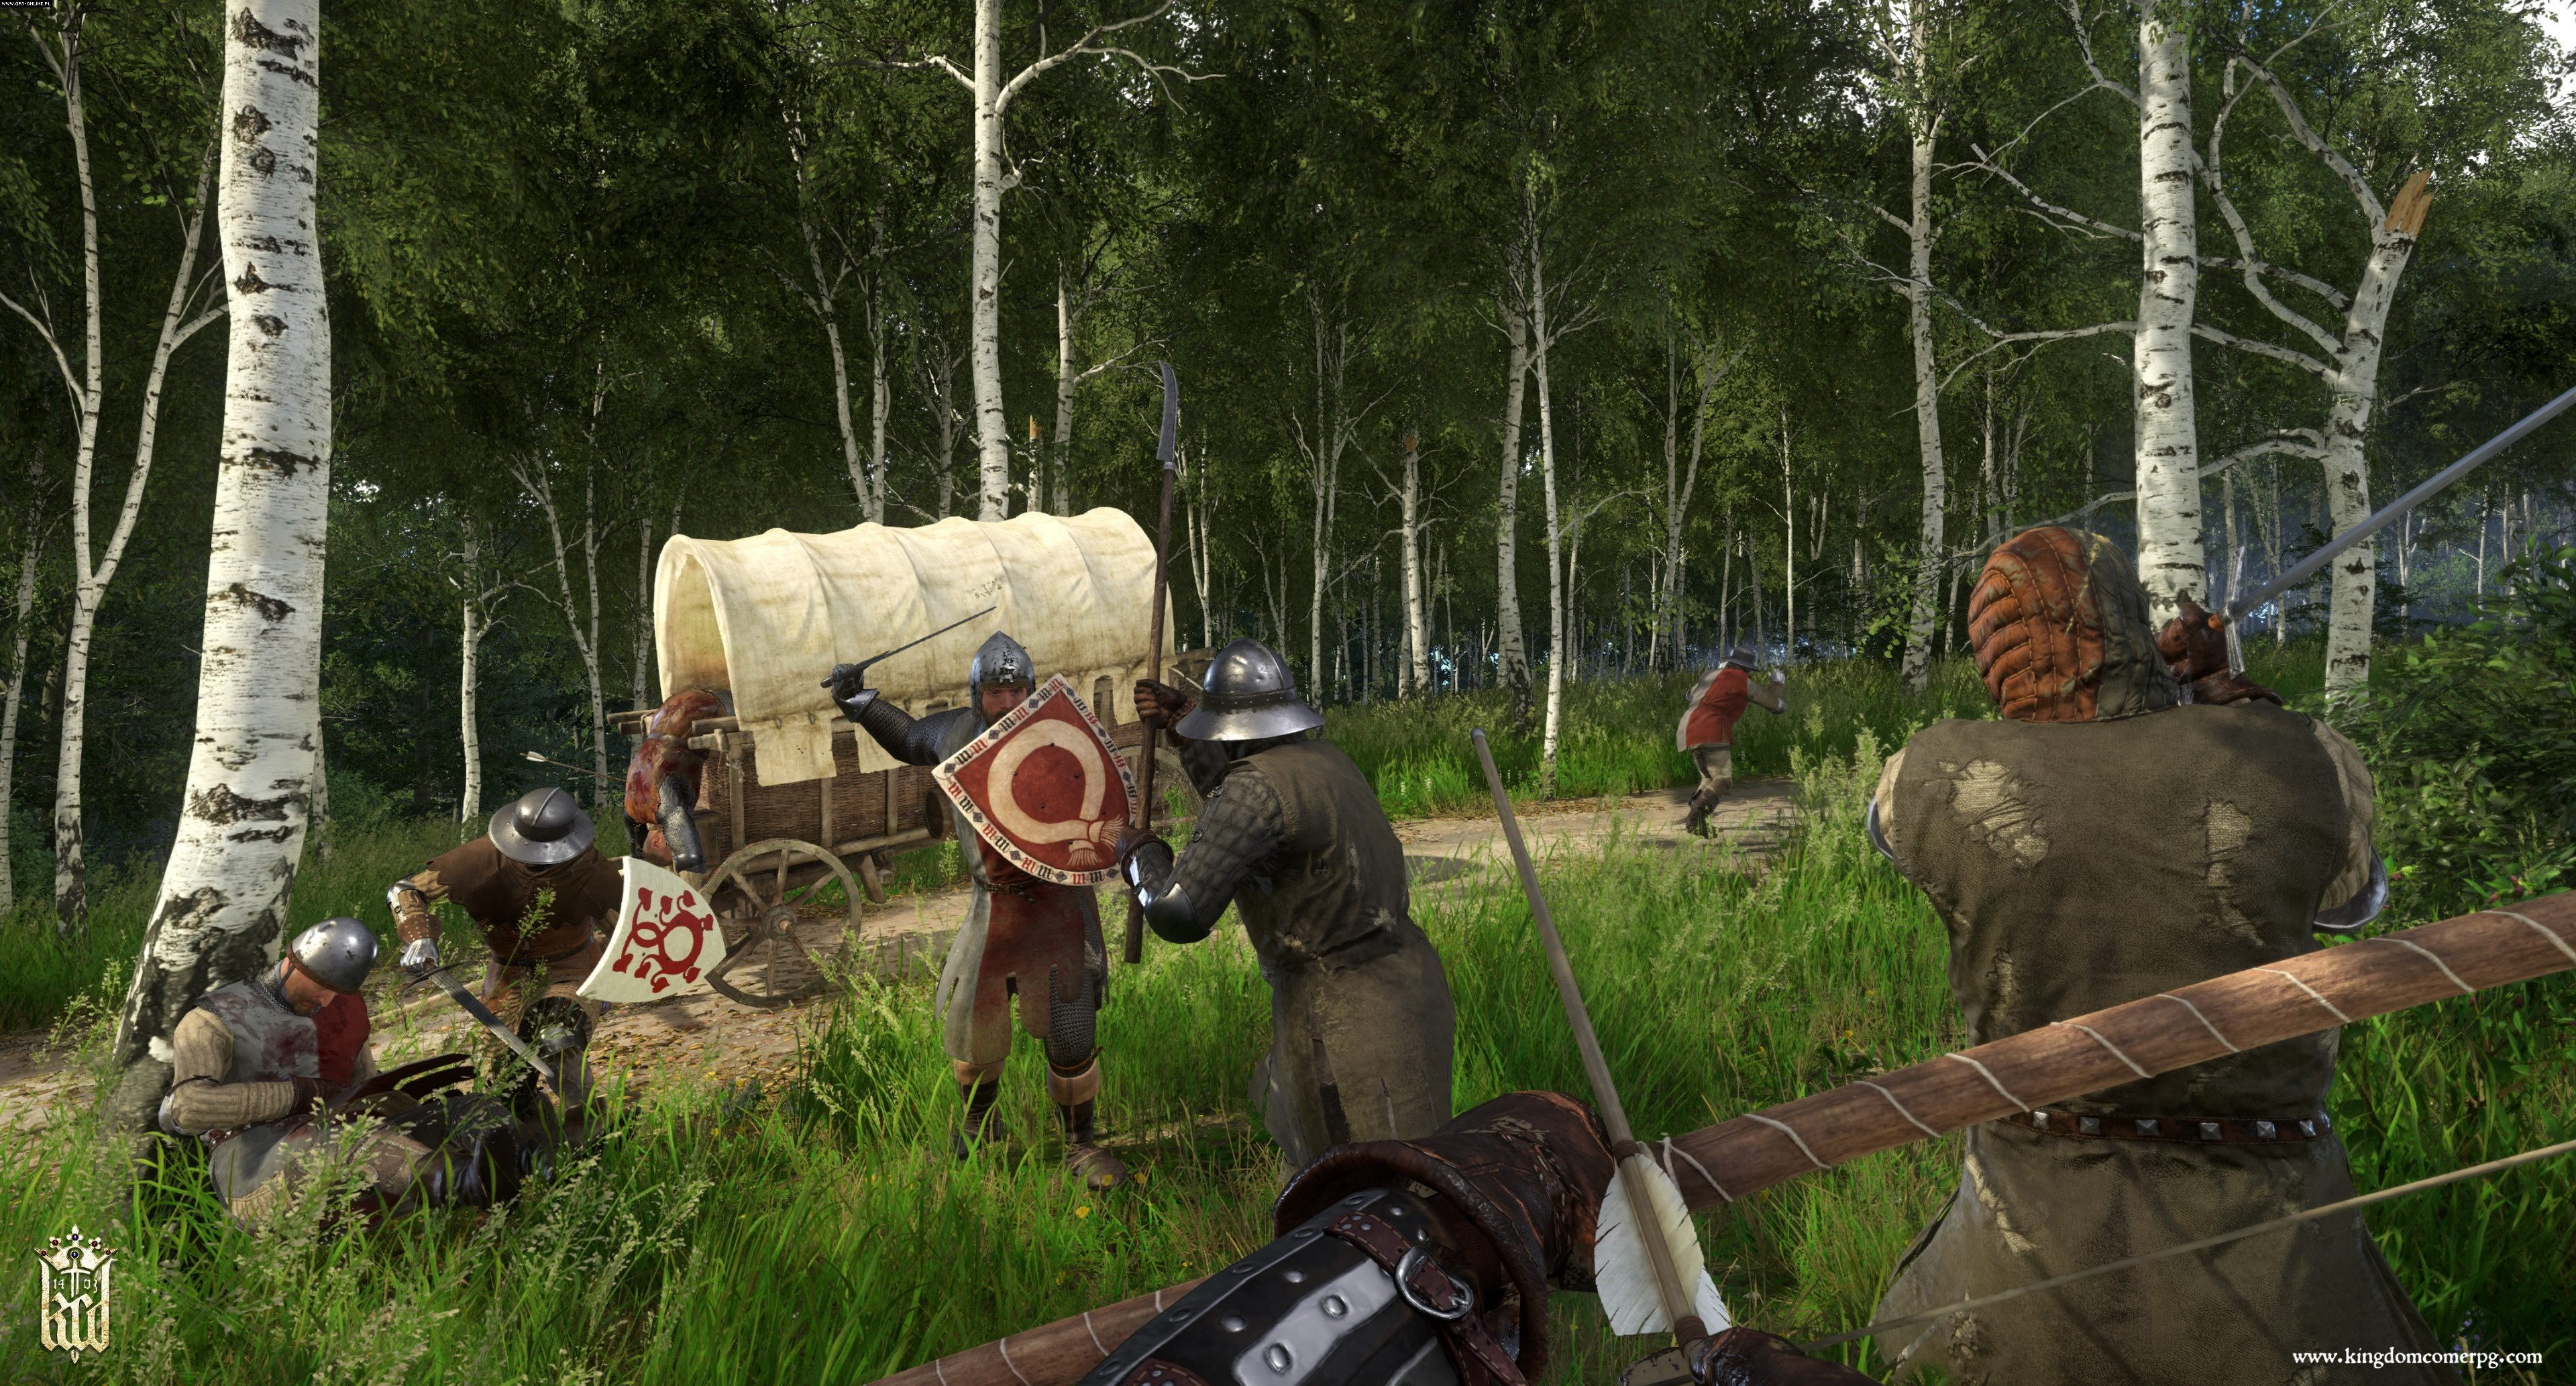 Kingdom Come: Deliverance PC, PS4, XONE Games Image 6/60, Warhorse Studios, Deep Silver / Koch Media